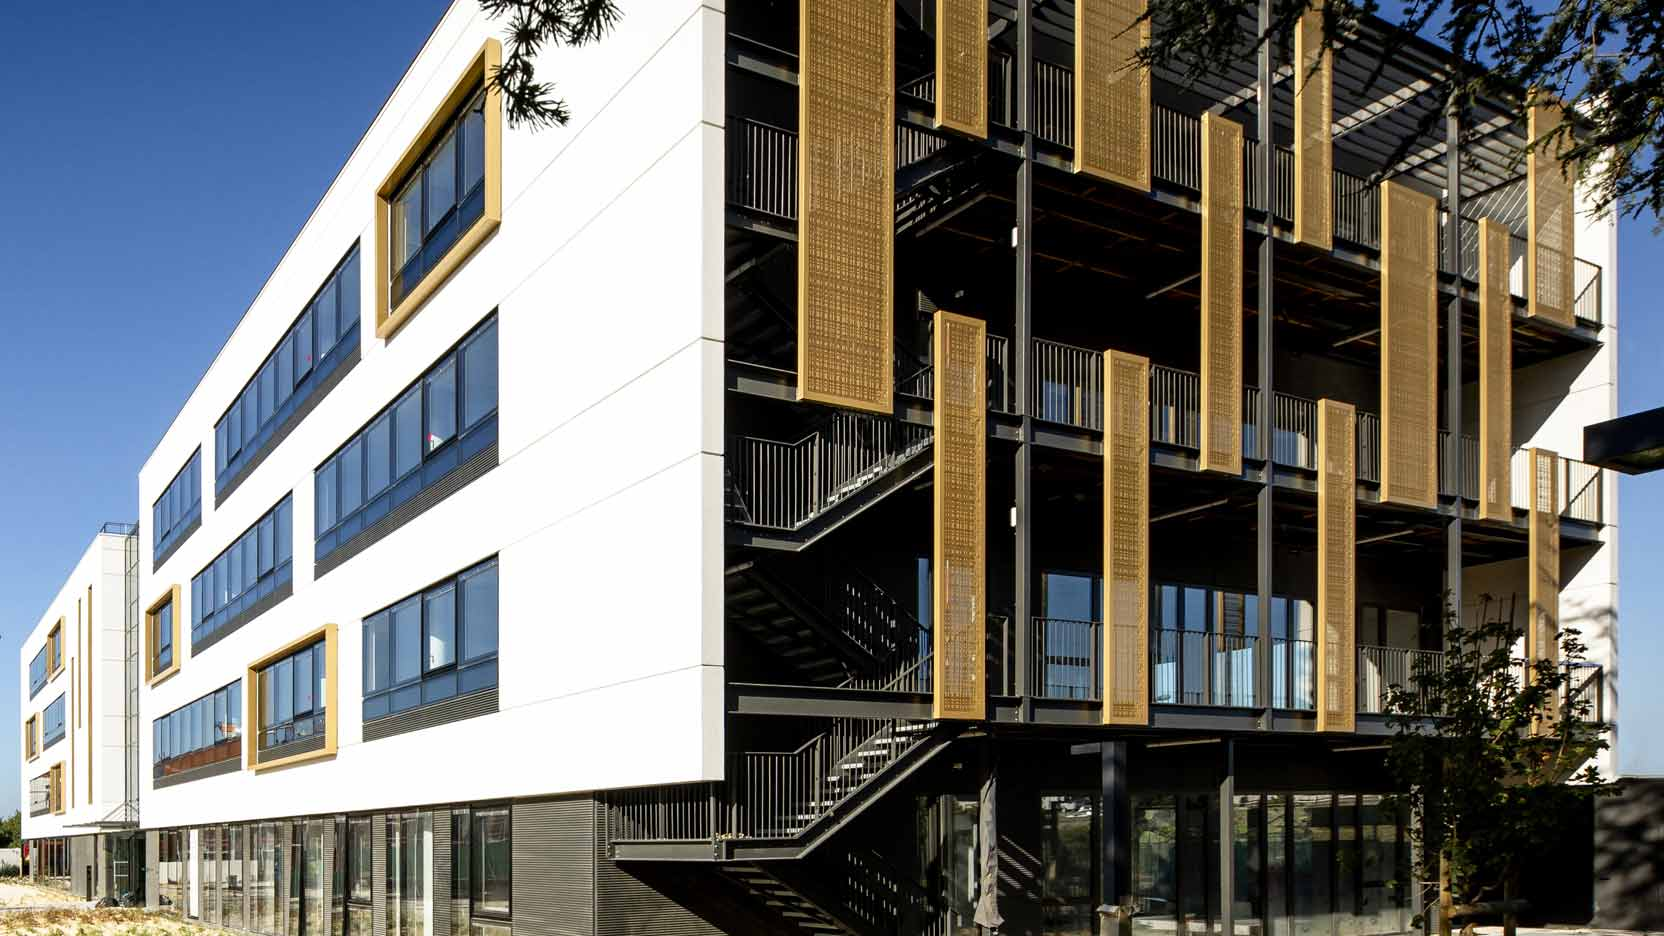 GA Smart Building livre au Groupe Unofi (Unofimmo) le 1er bâtiment du Campus « Now Living Spaces » à Toulouse